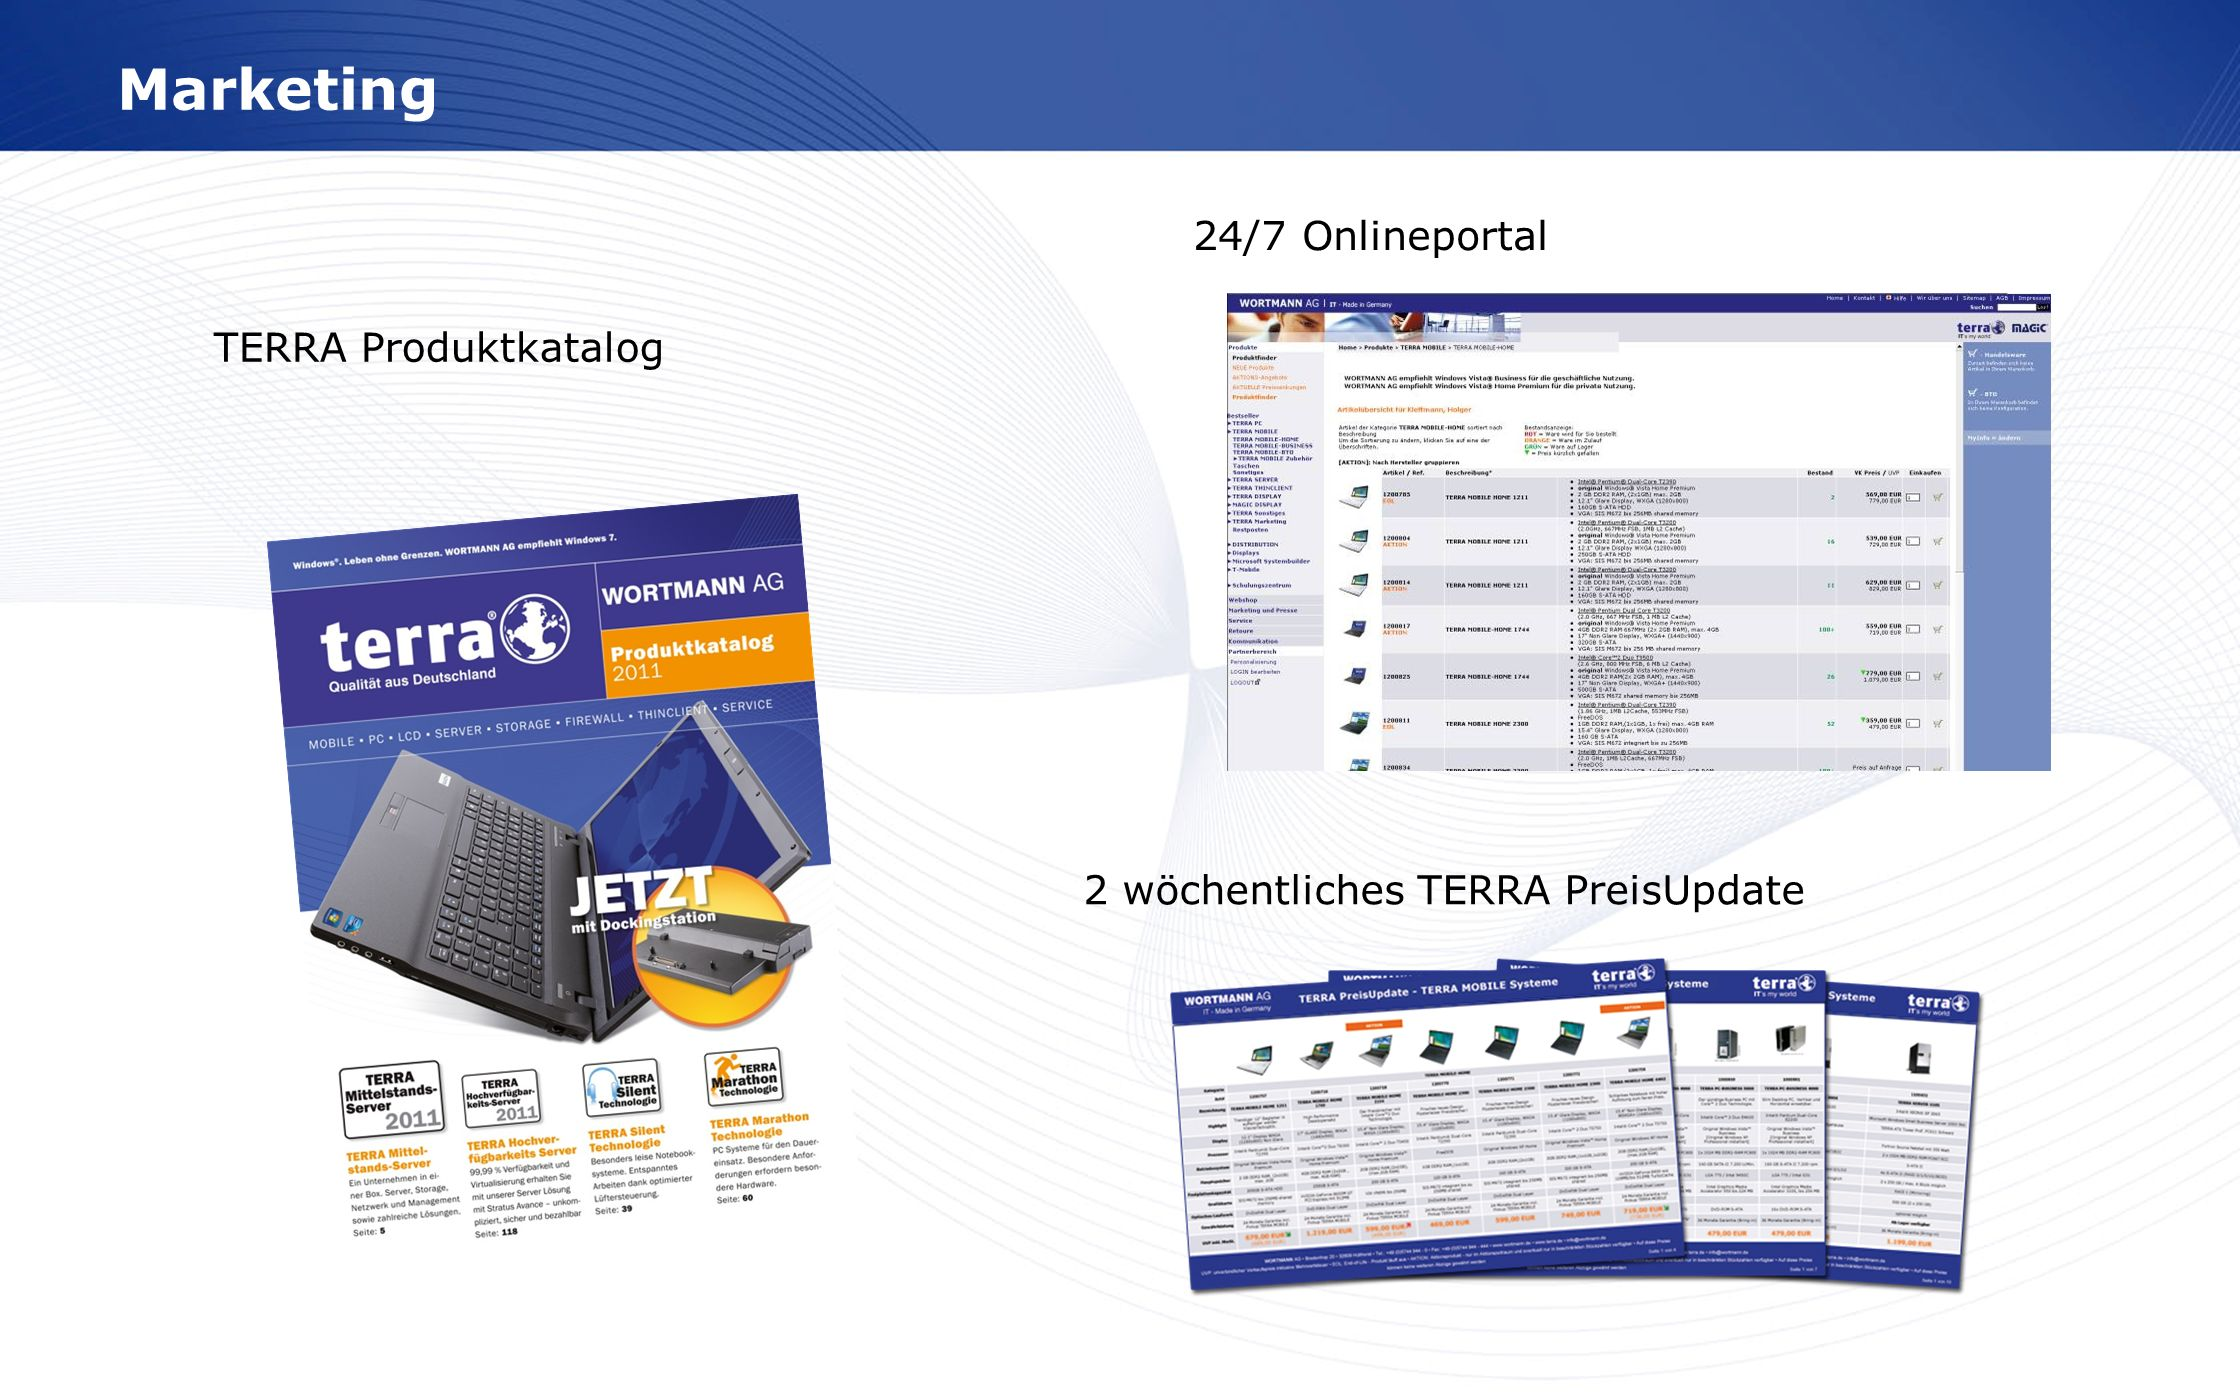 Marketing 24/7 Onlineportal TERRA Produktkatalog